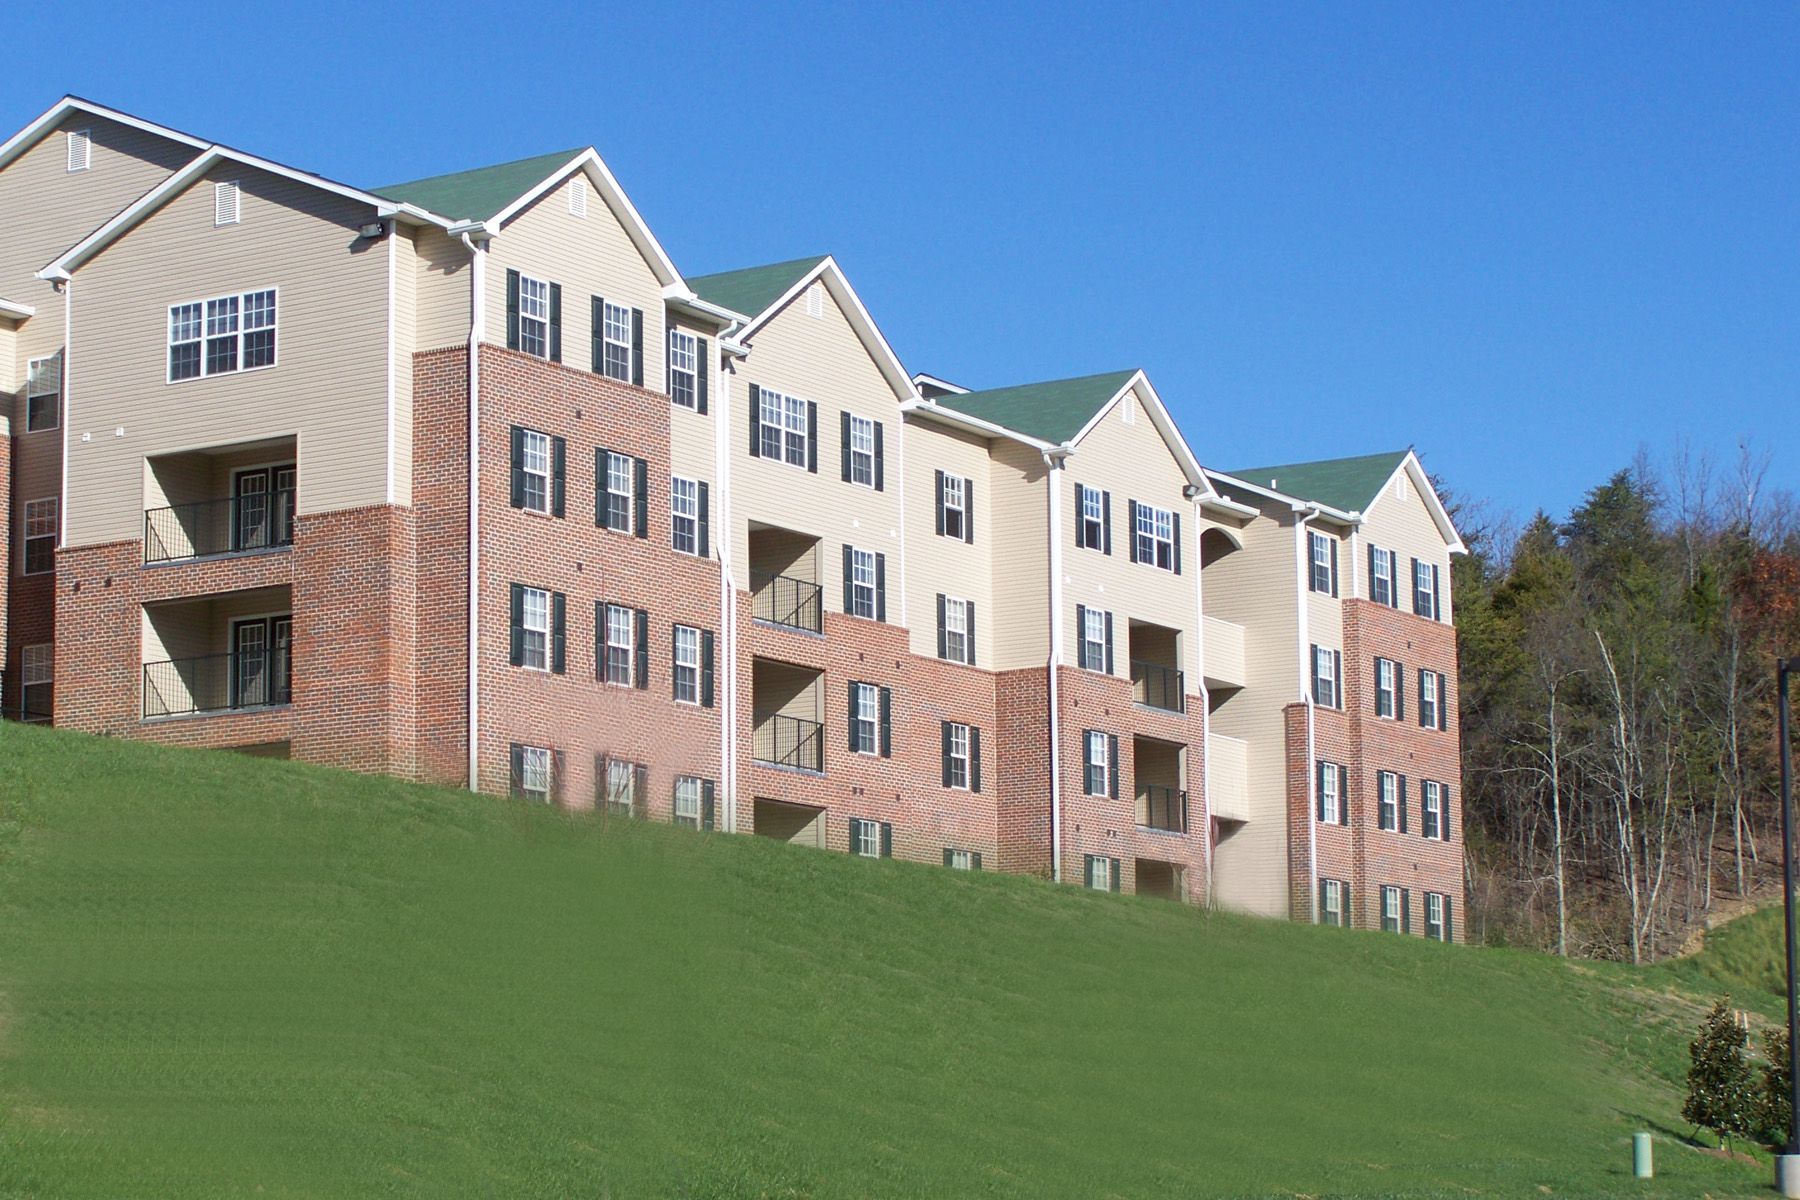 Cummings Place Apartments   Chattanooga. Chattanooga  TN Affordable and Low Income Housing   PublicHousing com